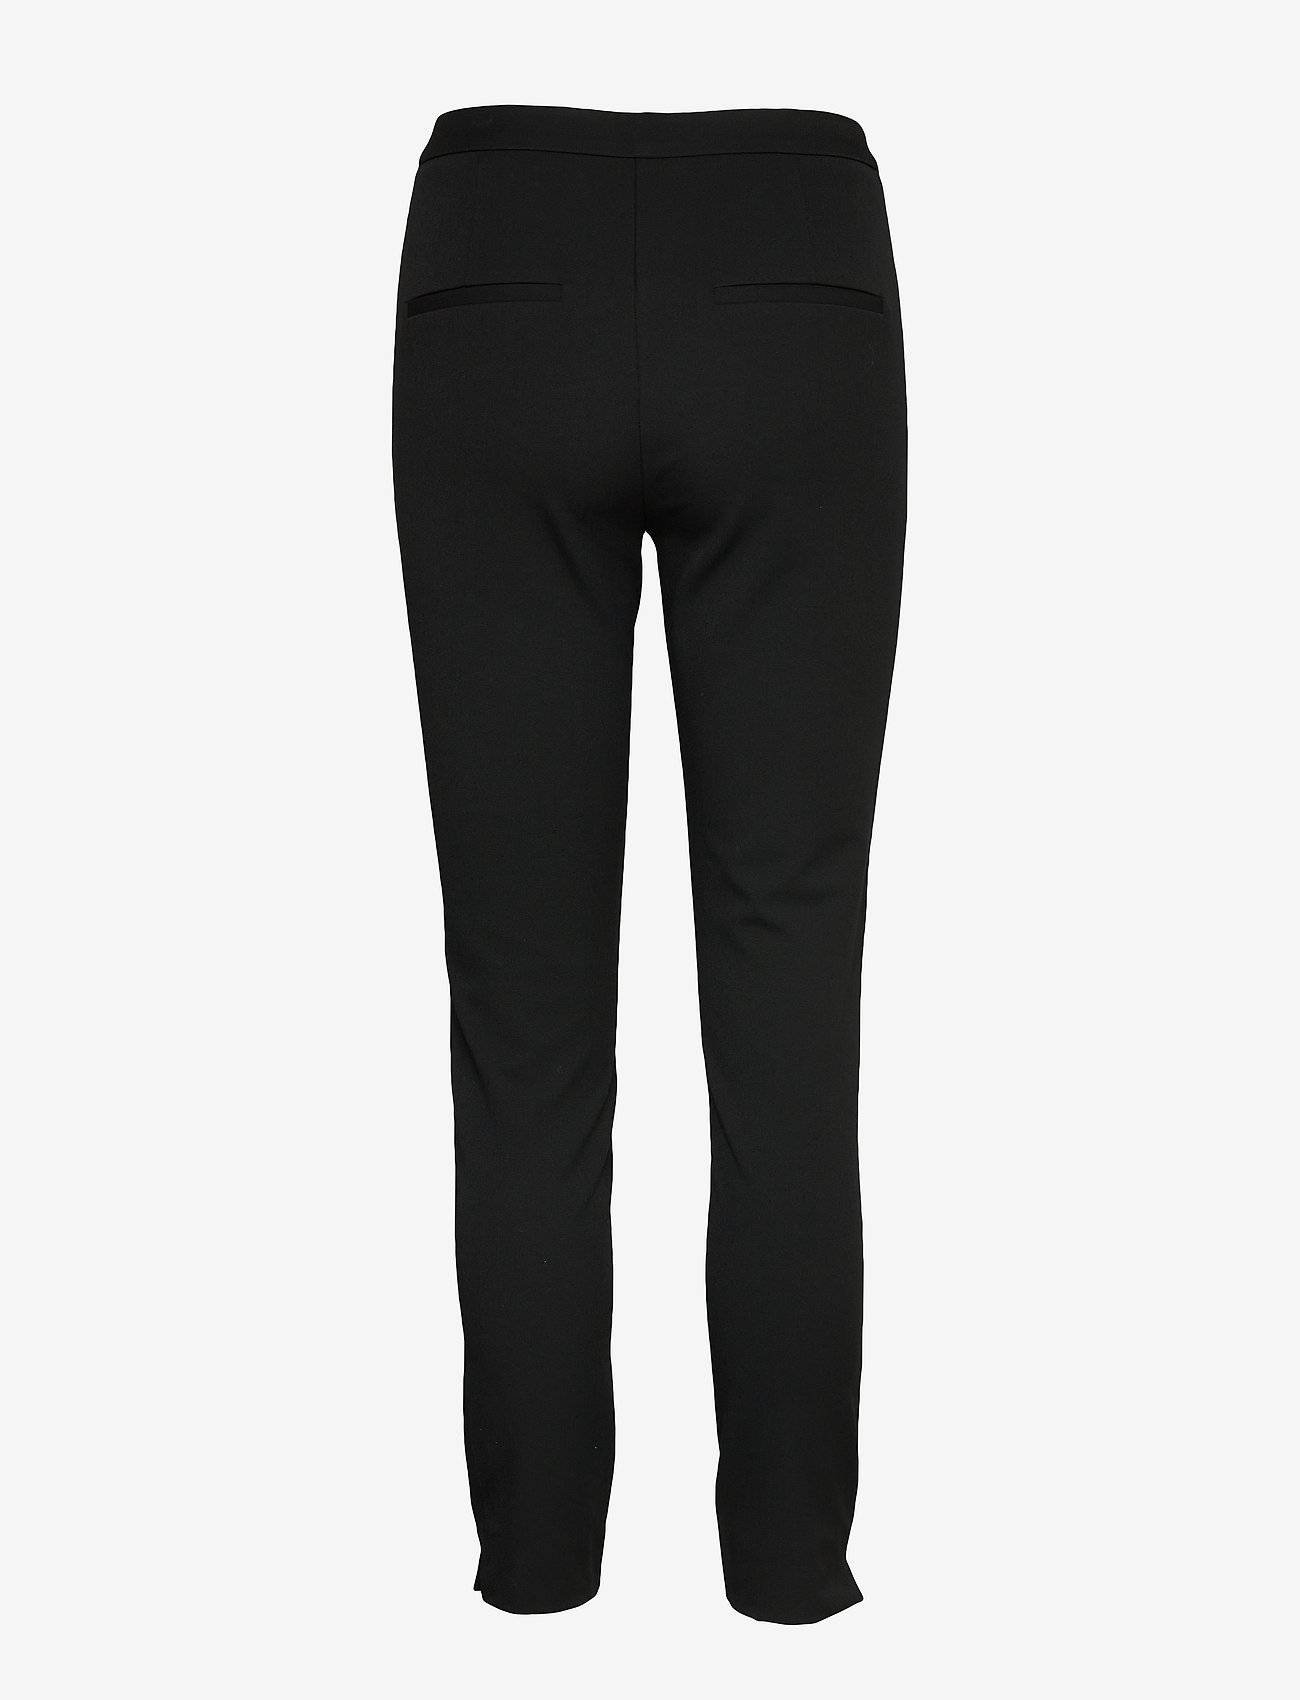 Selected Femme - SLFILUE MW PINTUCK PANT B NOOS - straight leg trousers - black - 1